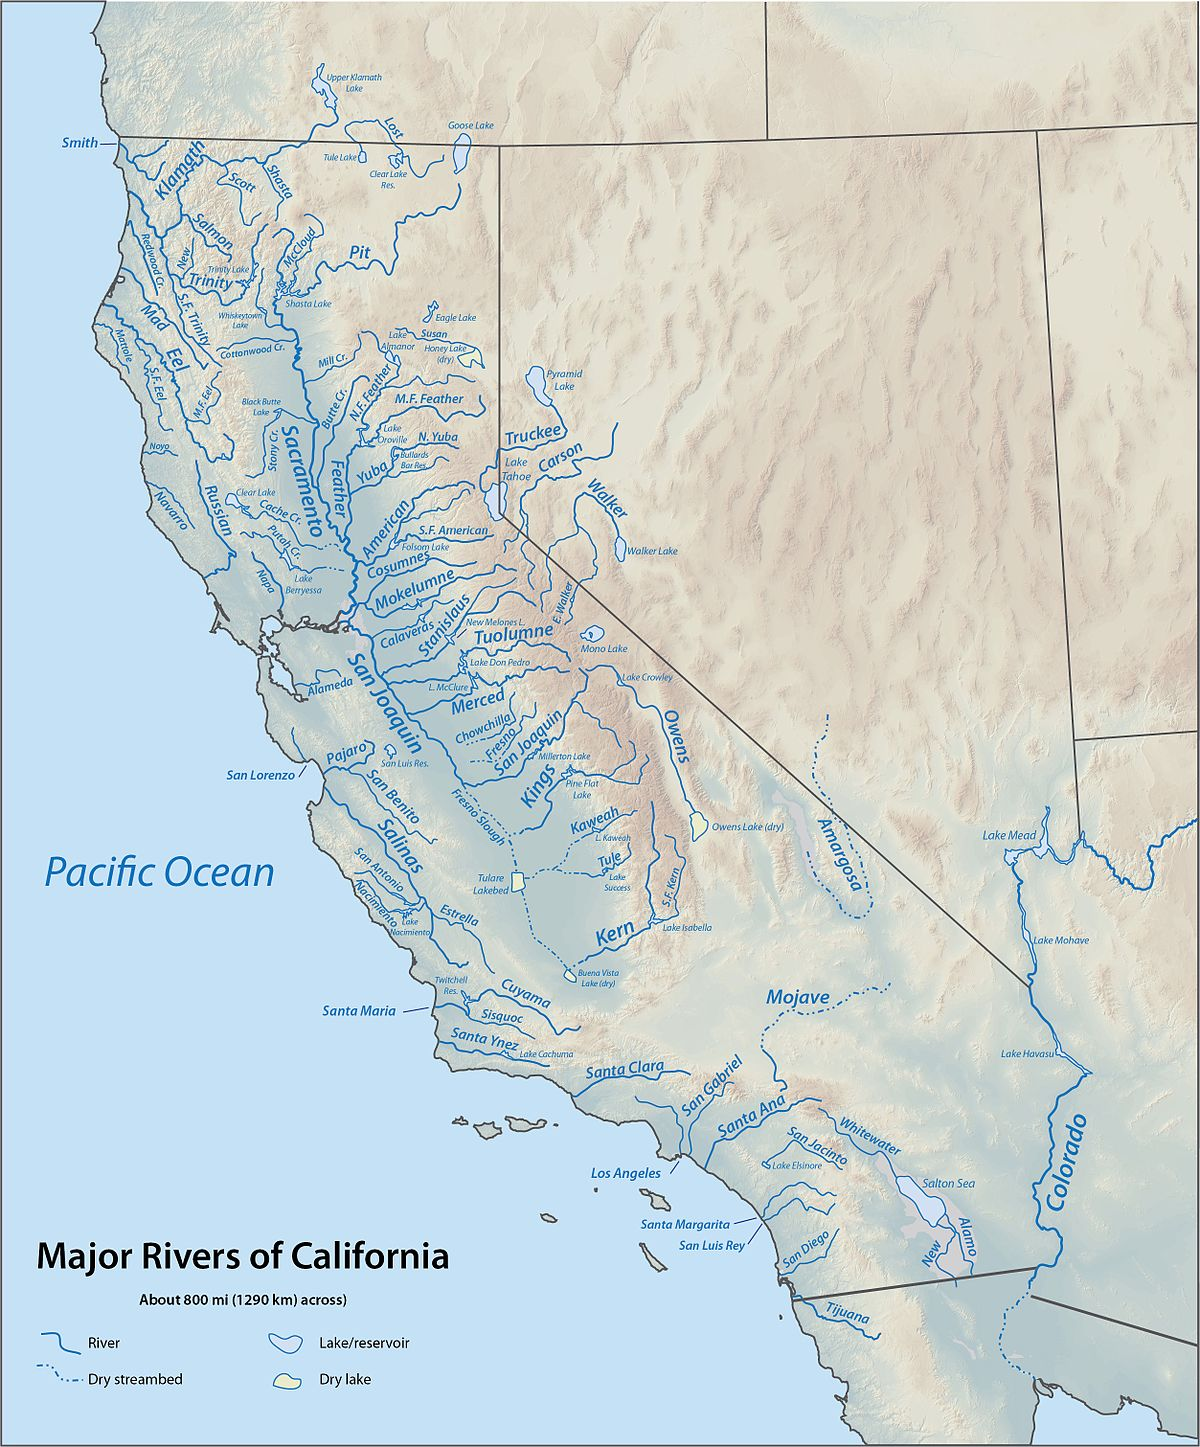 lakes in california map List Of Rivers Of California Wikipedia lakes in california map